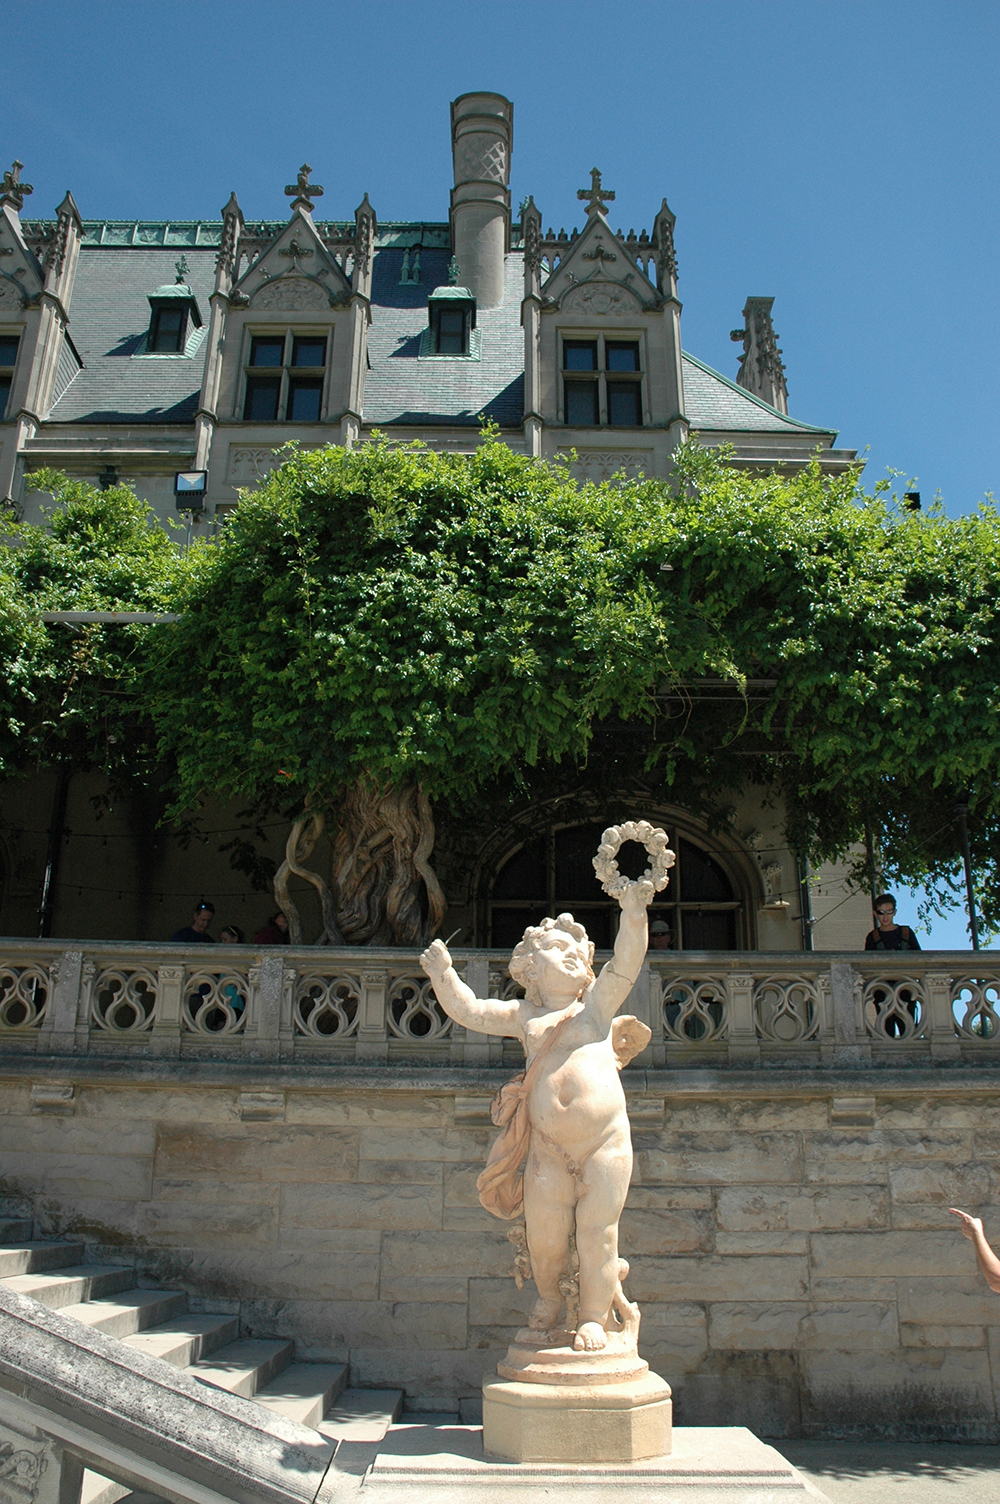 Cherub statue at Biltmore